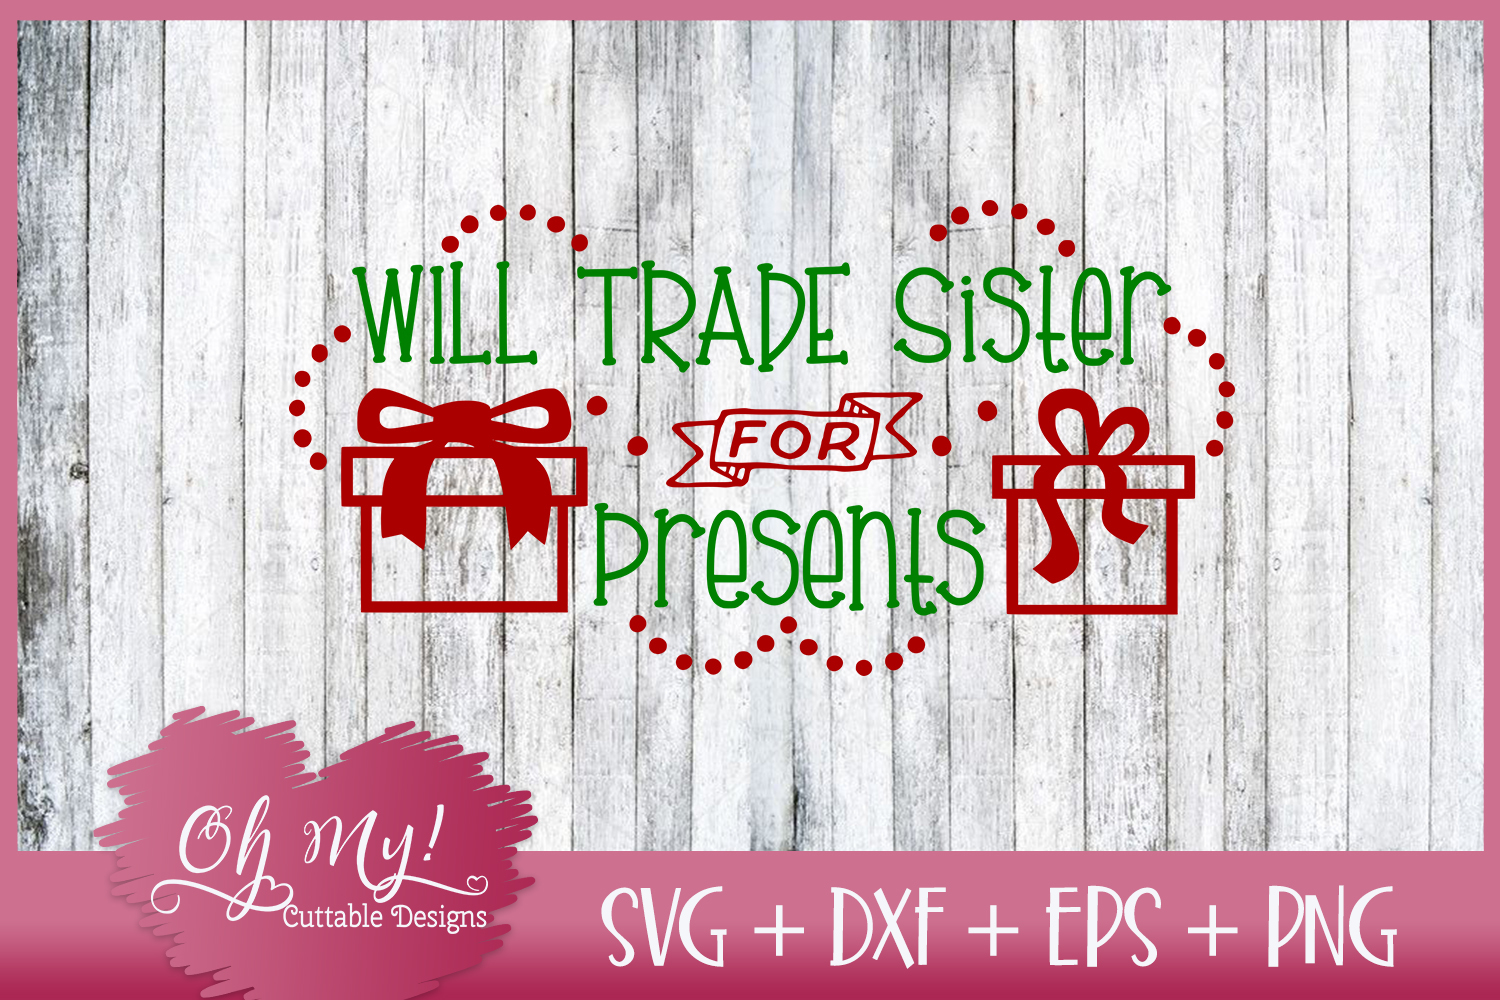 Will Trade Sister for Presents - SVG EPS DXF Cutting File example image 1